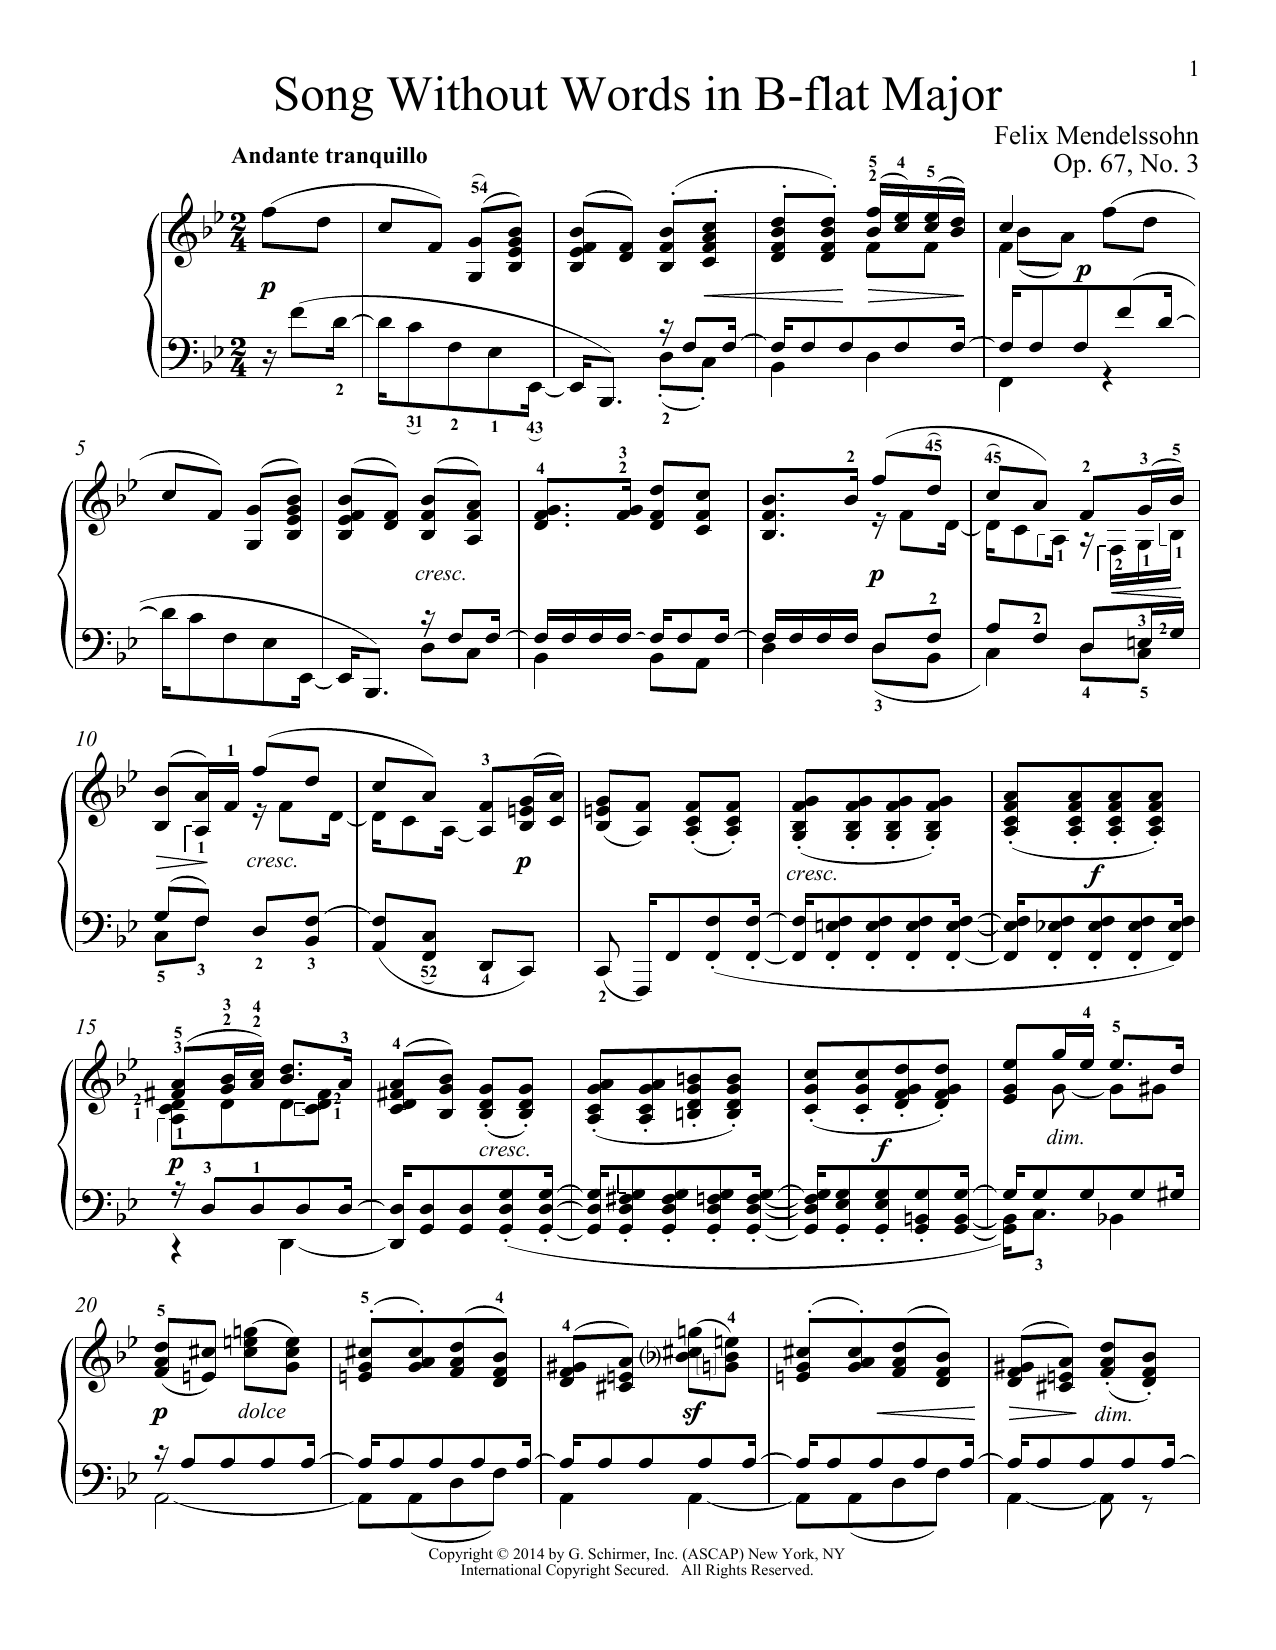 Immanuela Gruenberg Song Without Words In B-Flat Major, Op. 67, No. 3 sheet music notes and chords. Download Printable PDF.